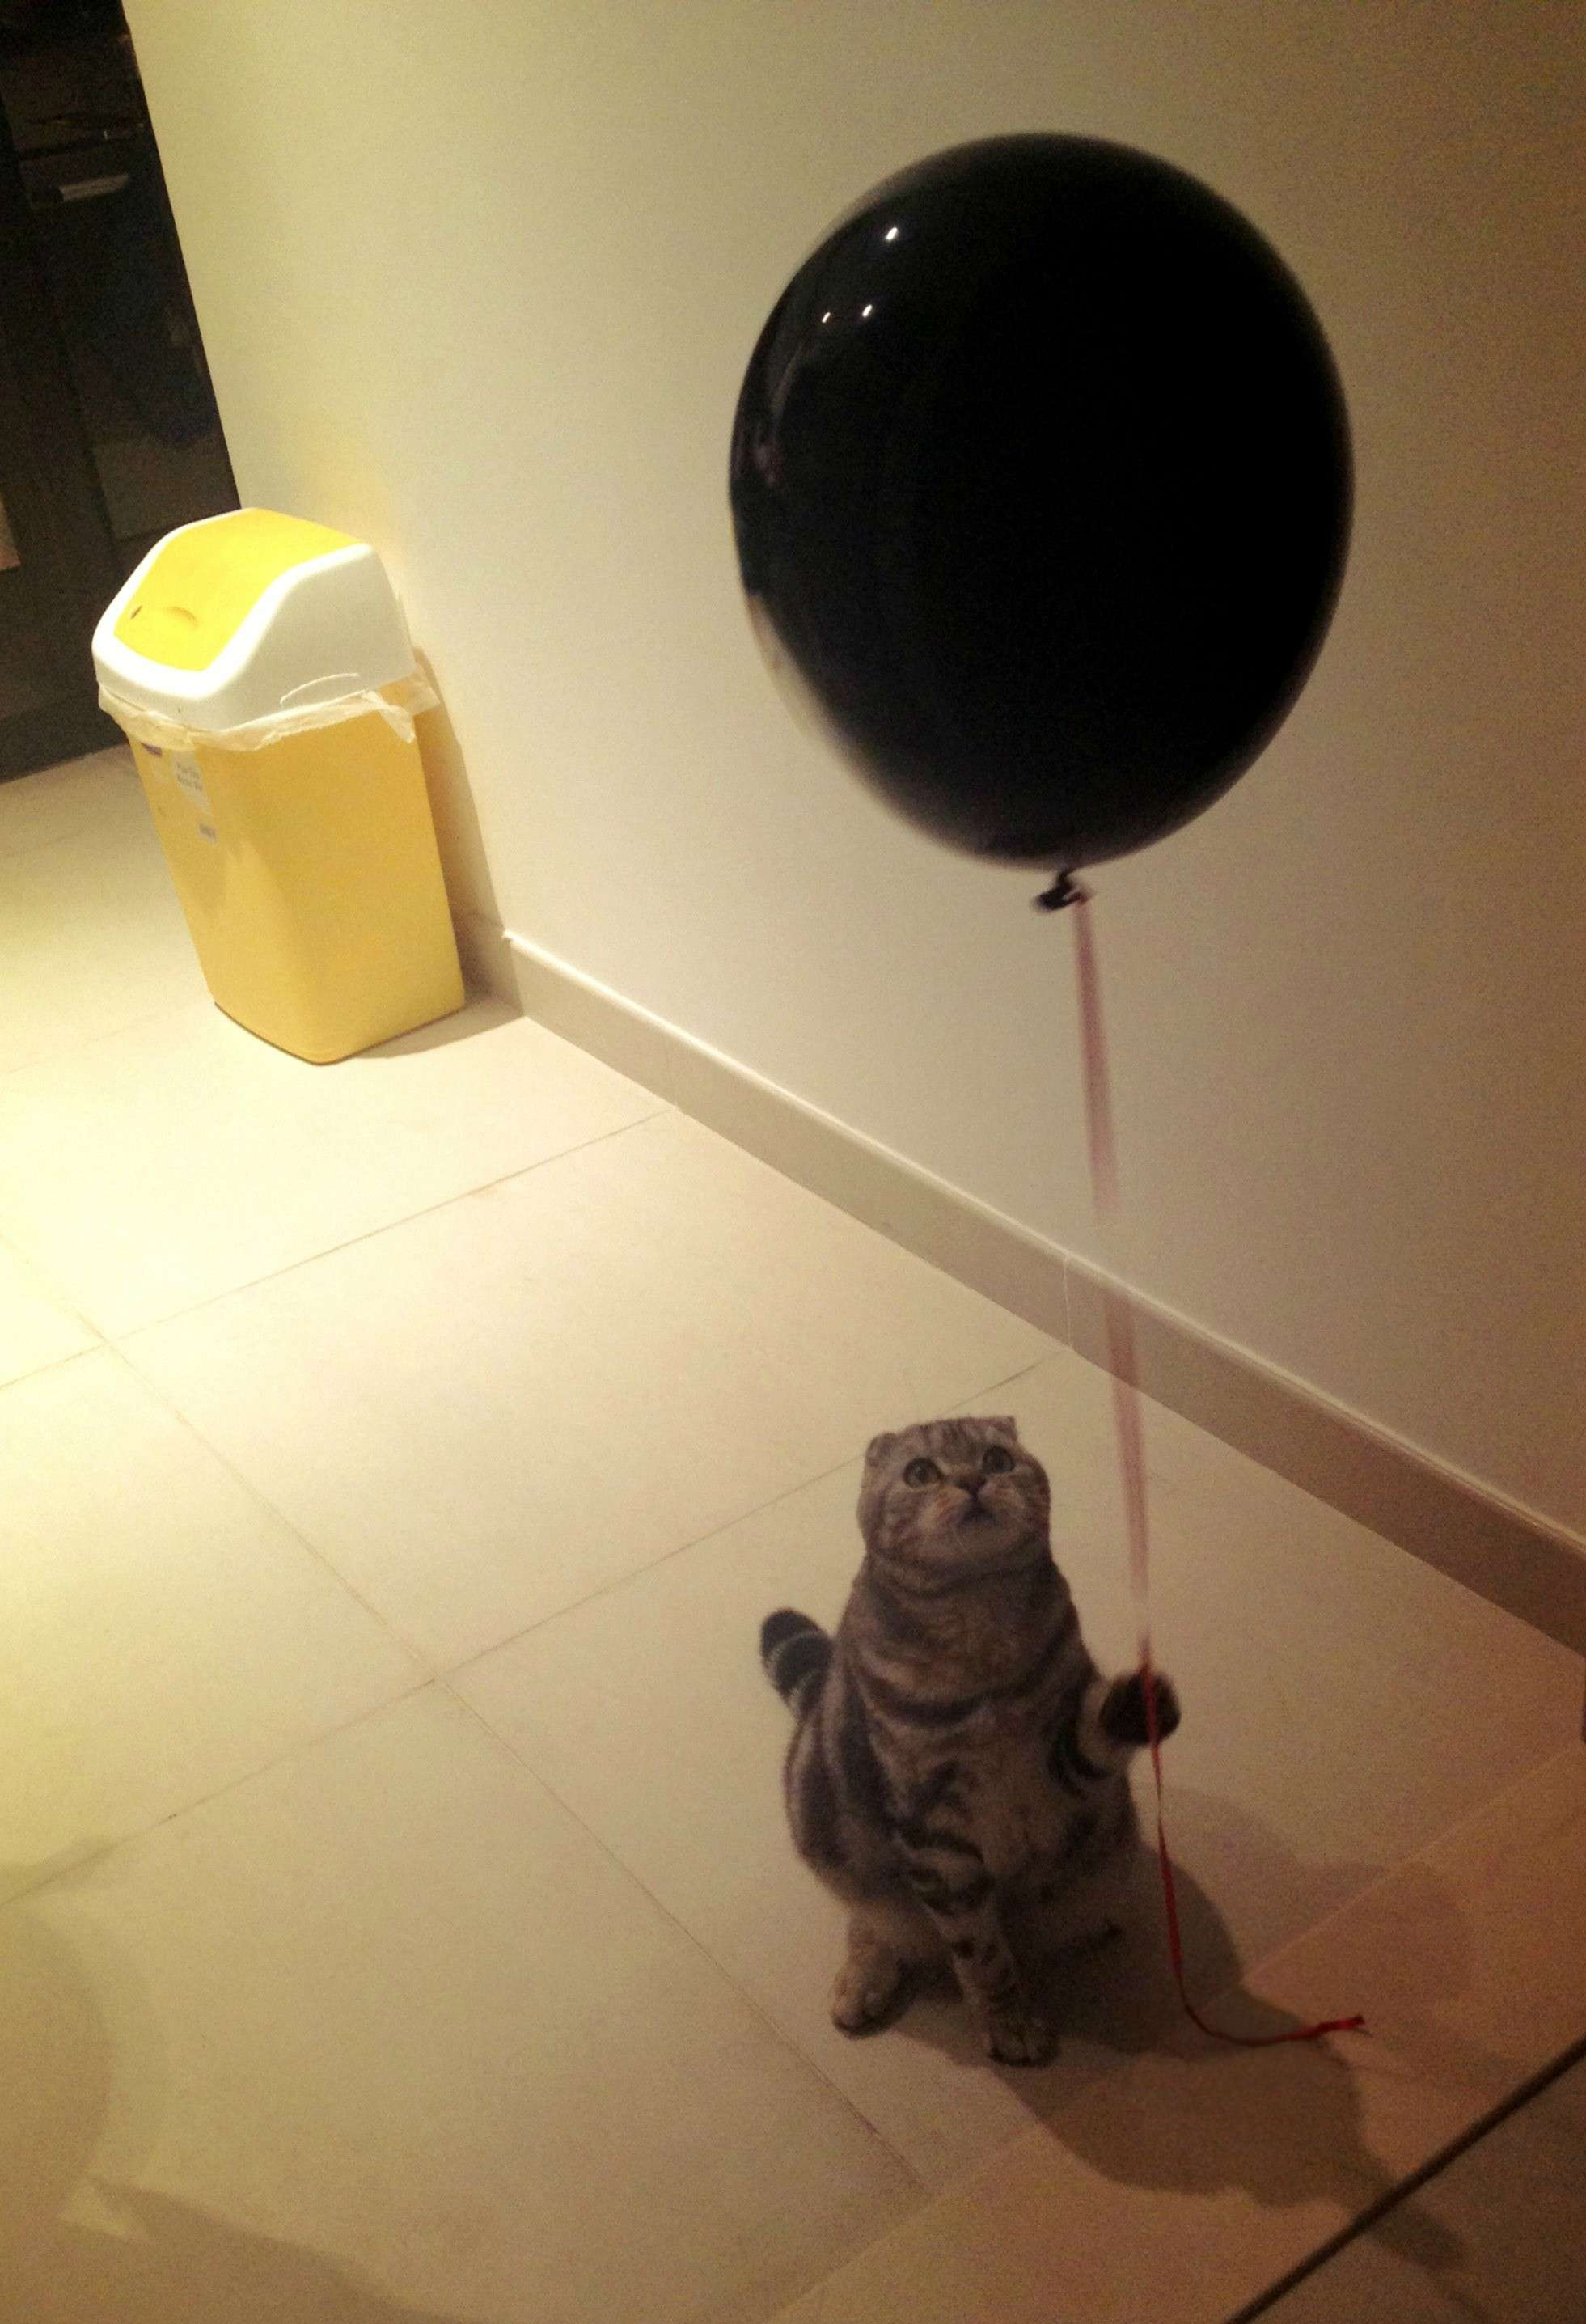 Cat with Ballon